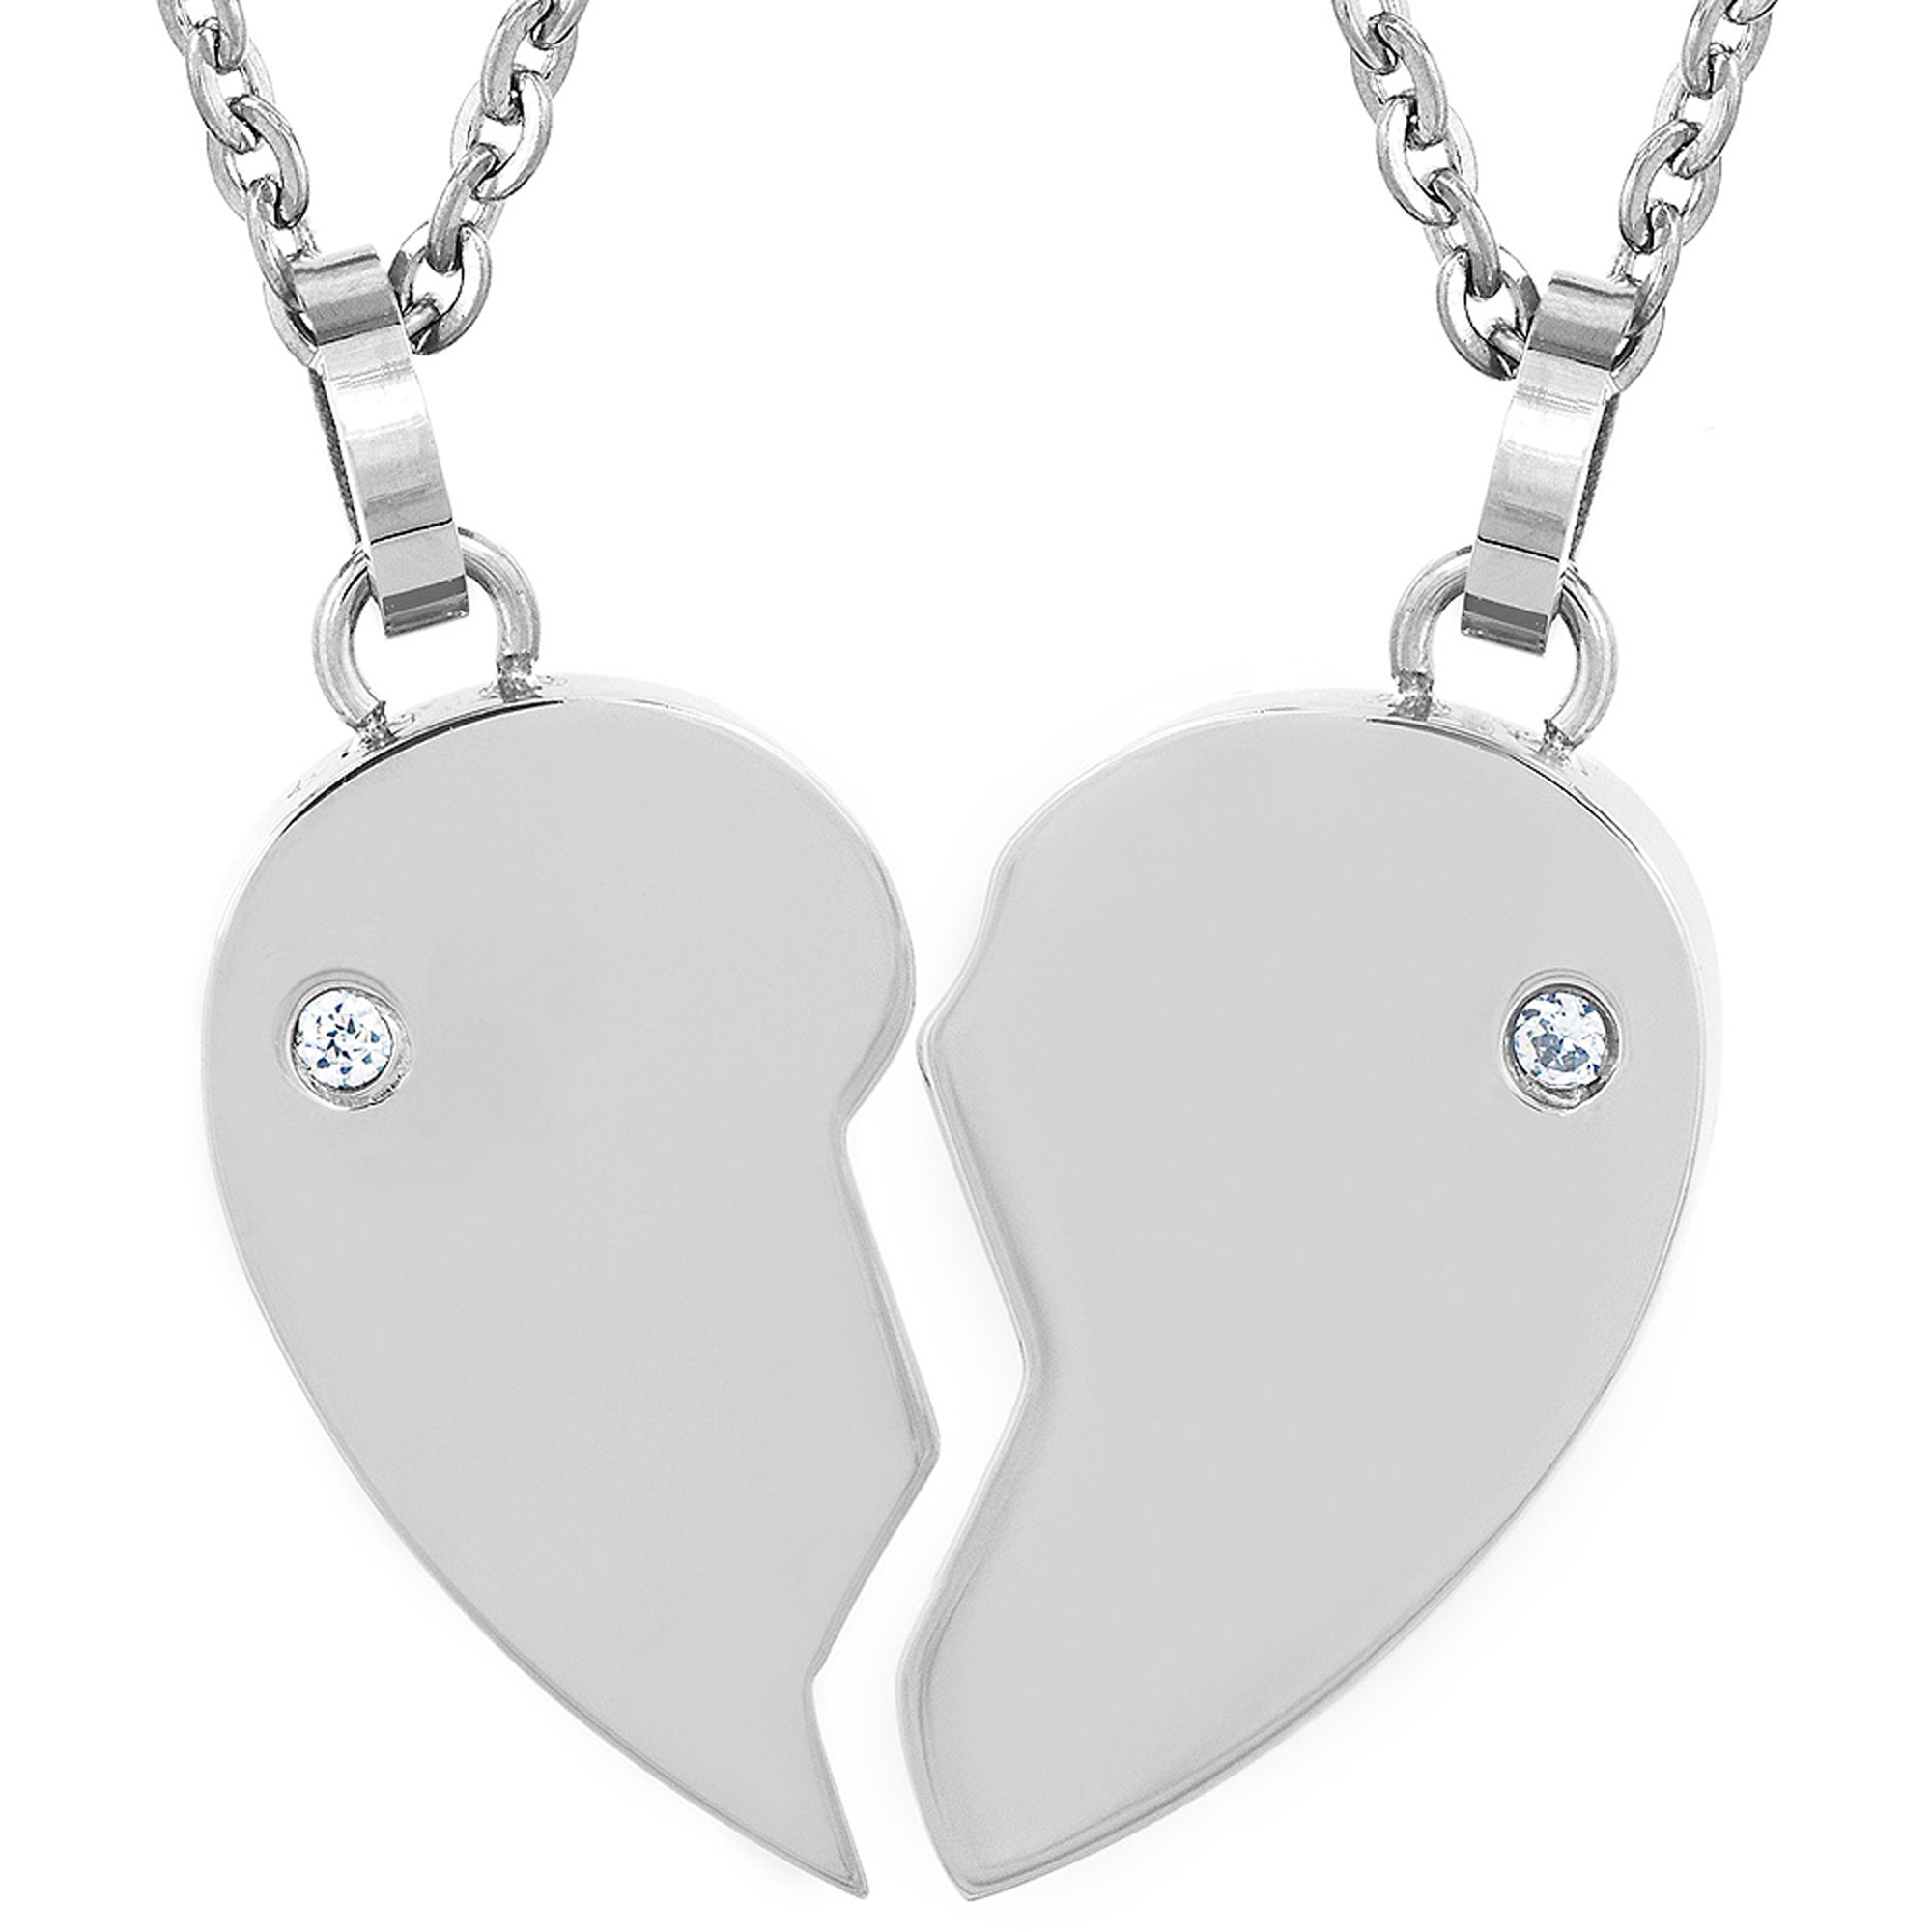 Image result for half heart necklace